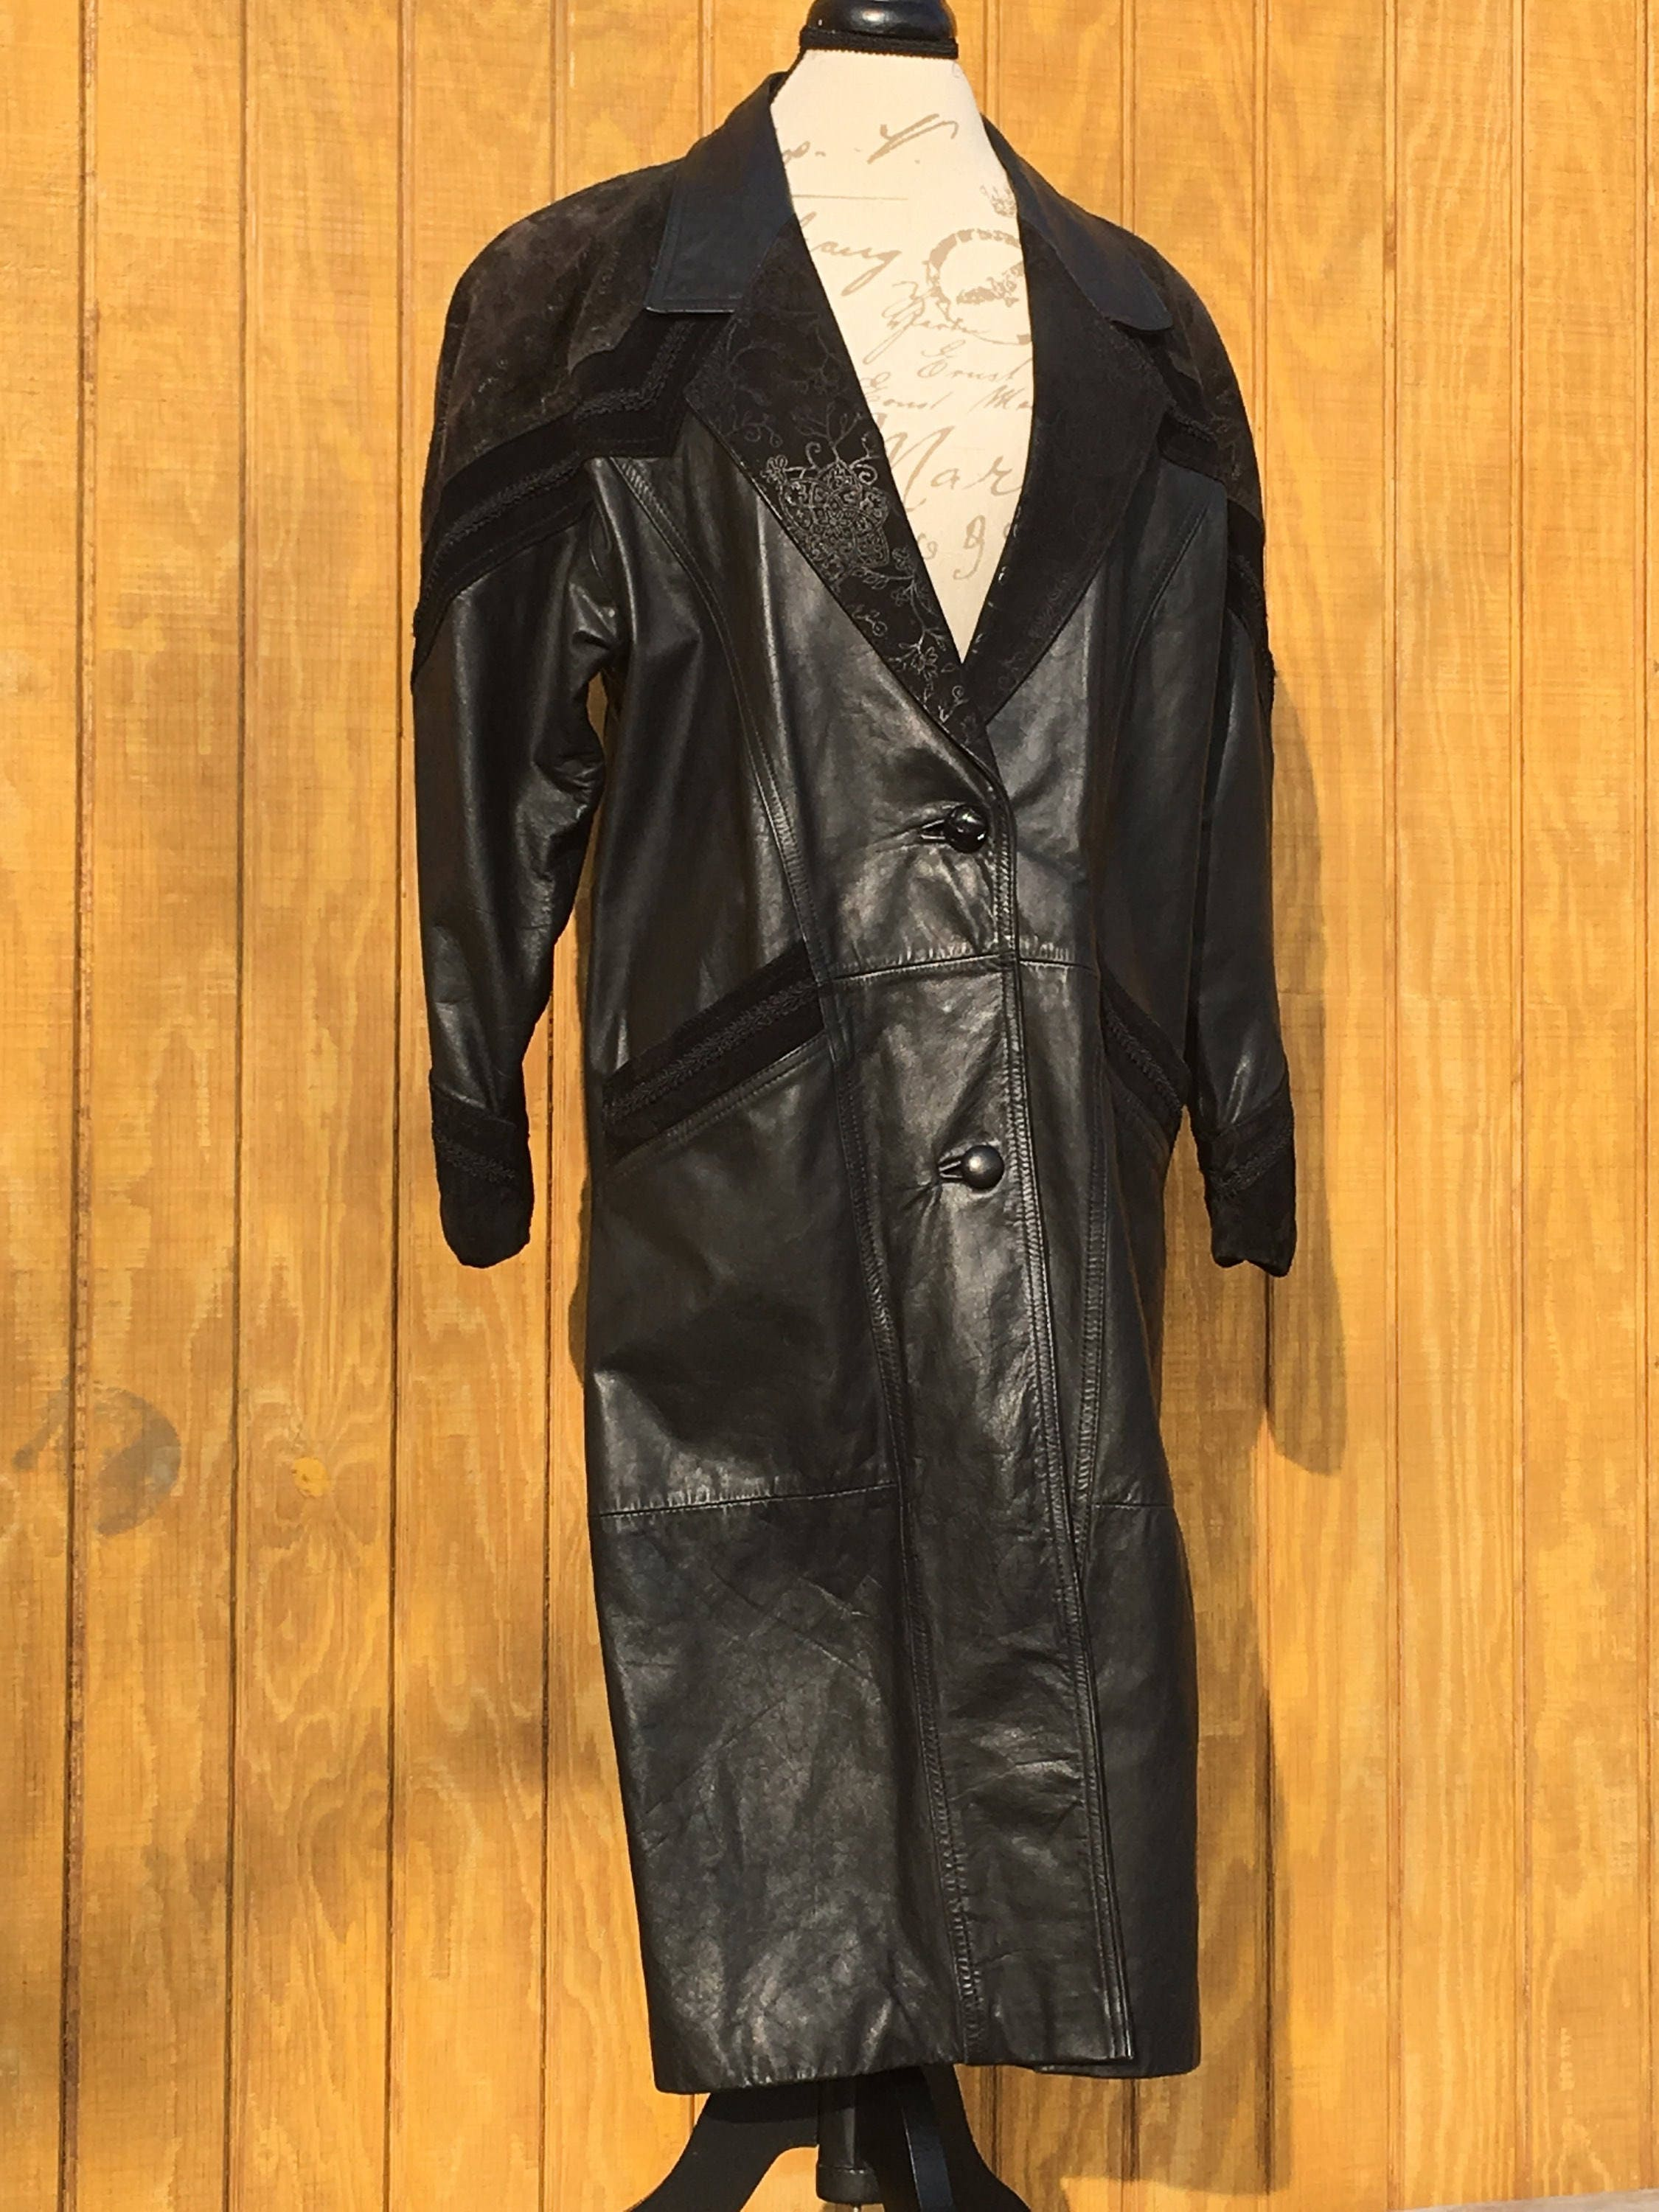 e6773b69daa6 Vintage Leather Trench Coat